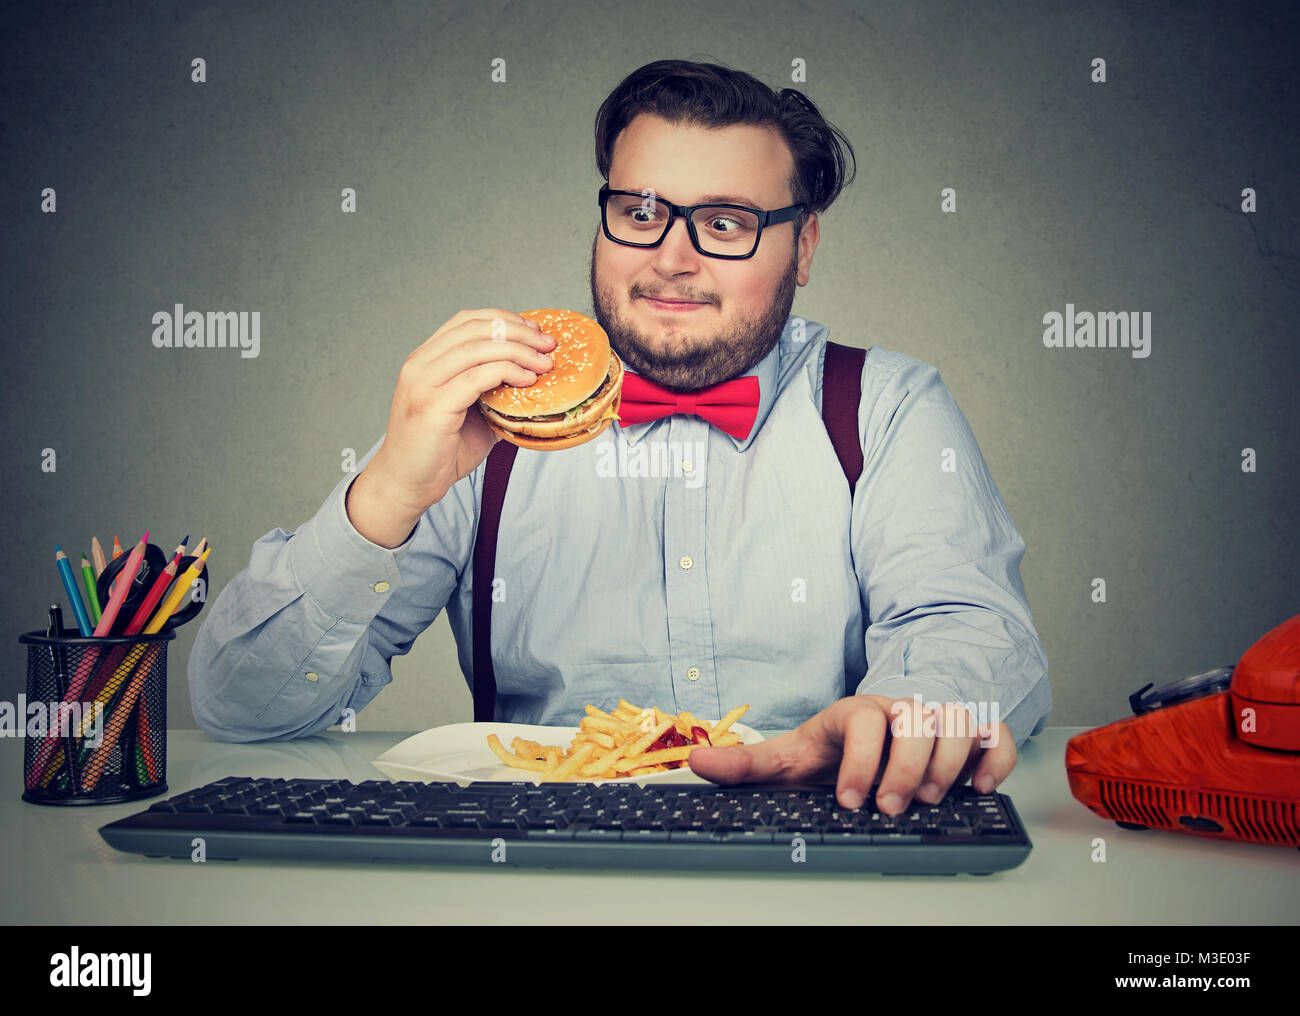 Obese man in glasses eating fast food while working in office and overeating. - Stock Image